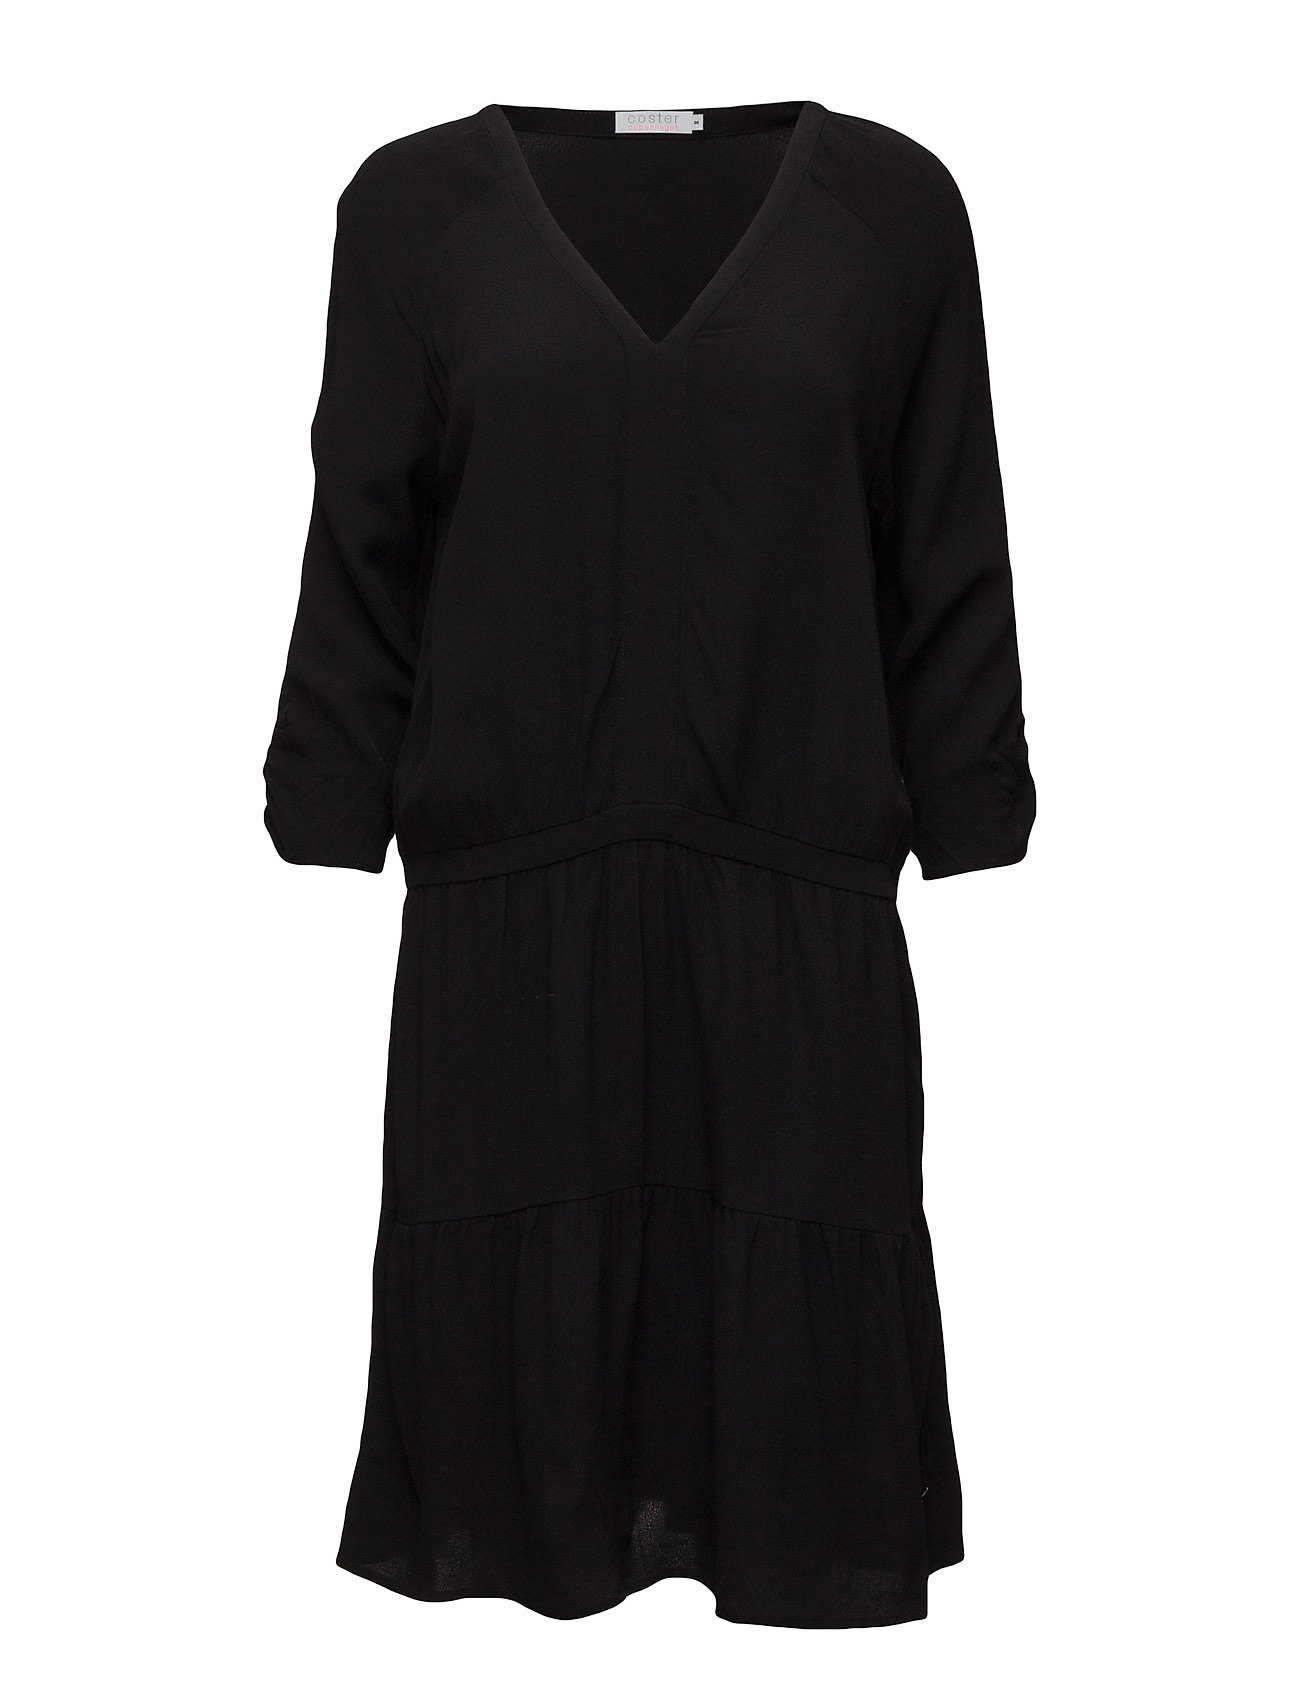 Womens Moss Crepe Shirt Dress Coster Copenhagen Low Cost View Visit Pick A Best Cheap Price fGn2t3eVzy